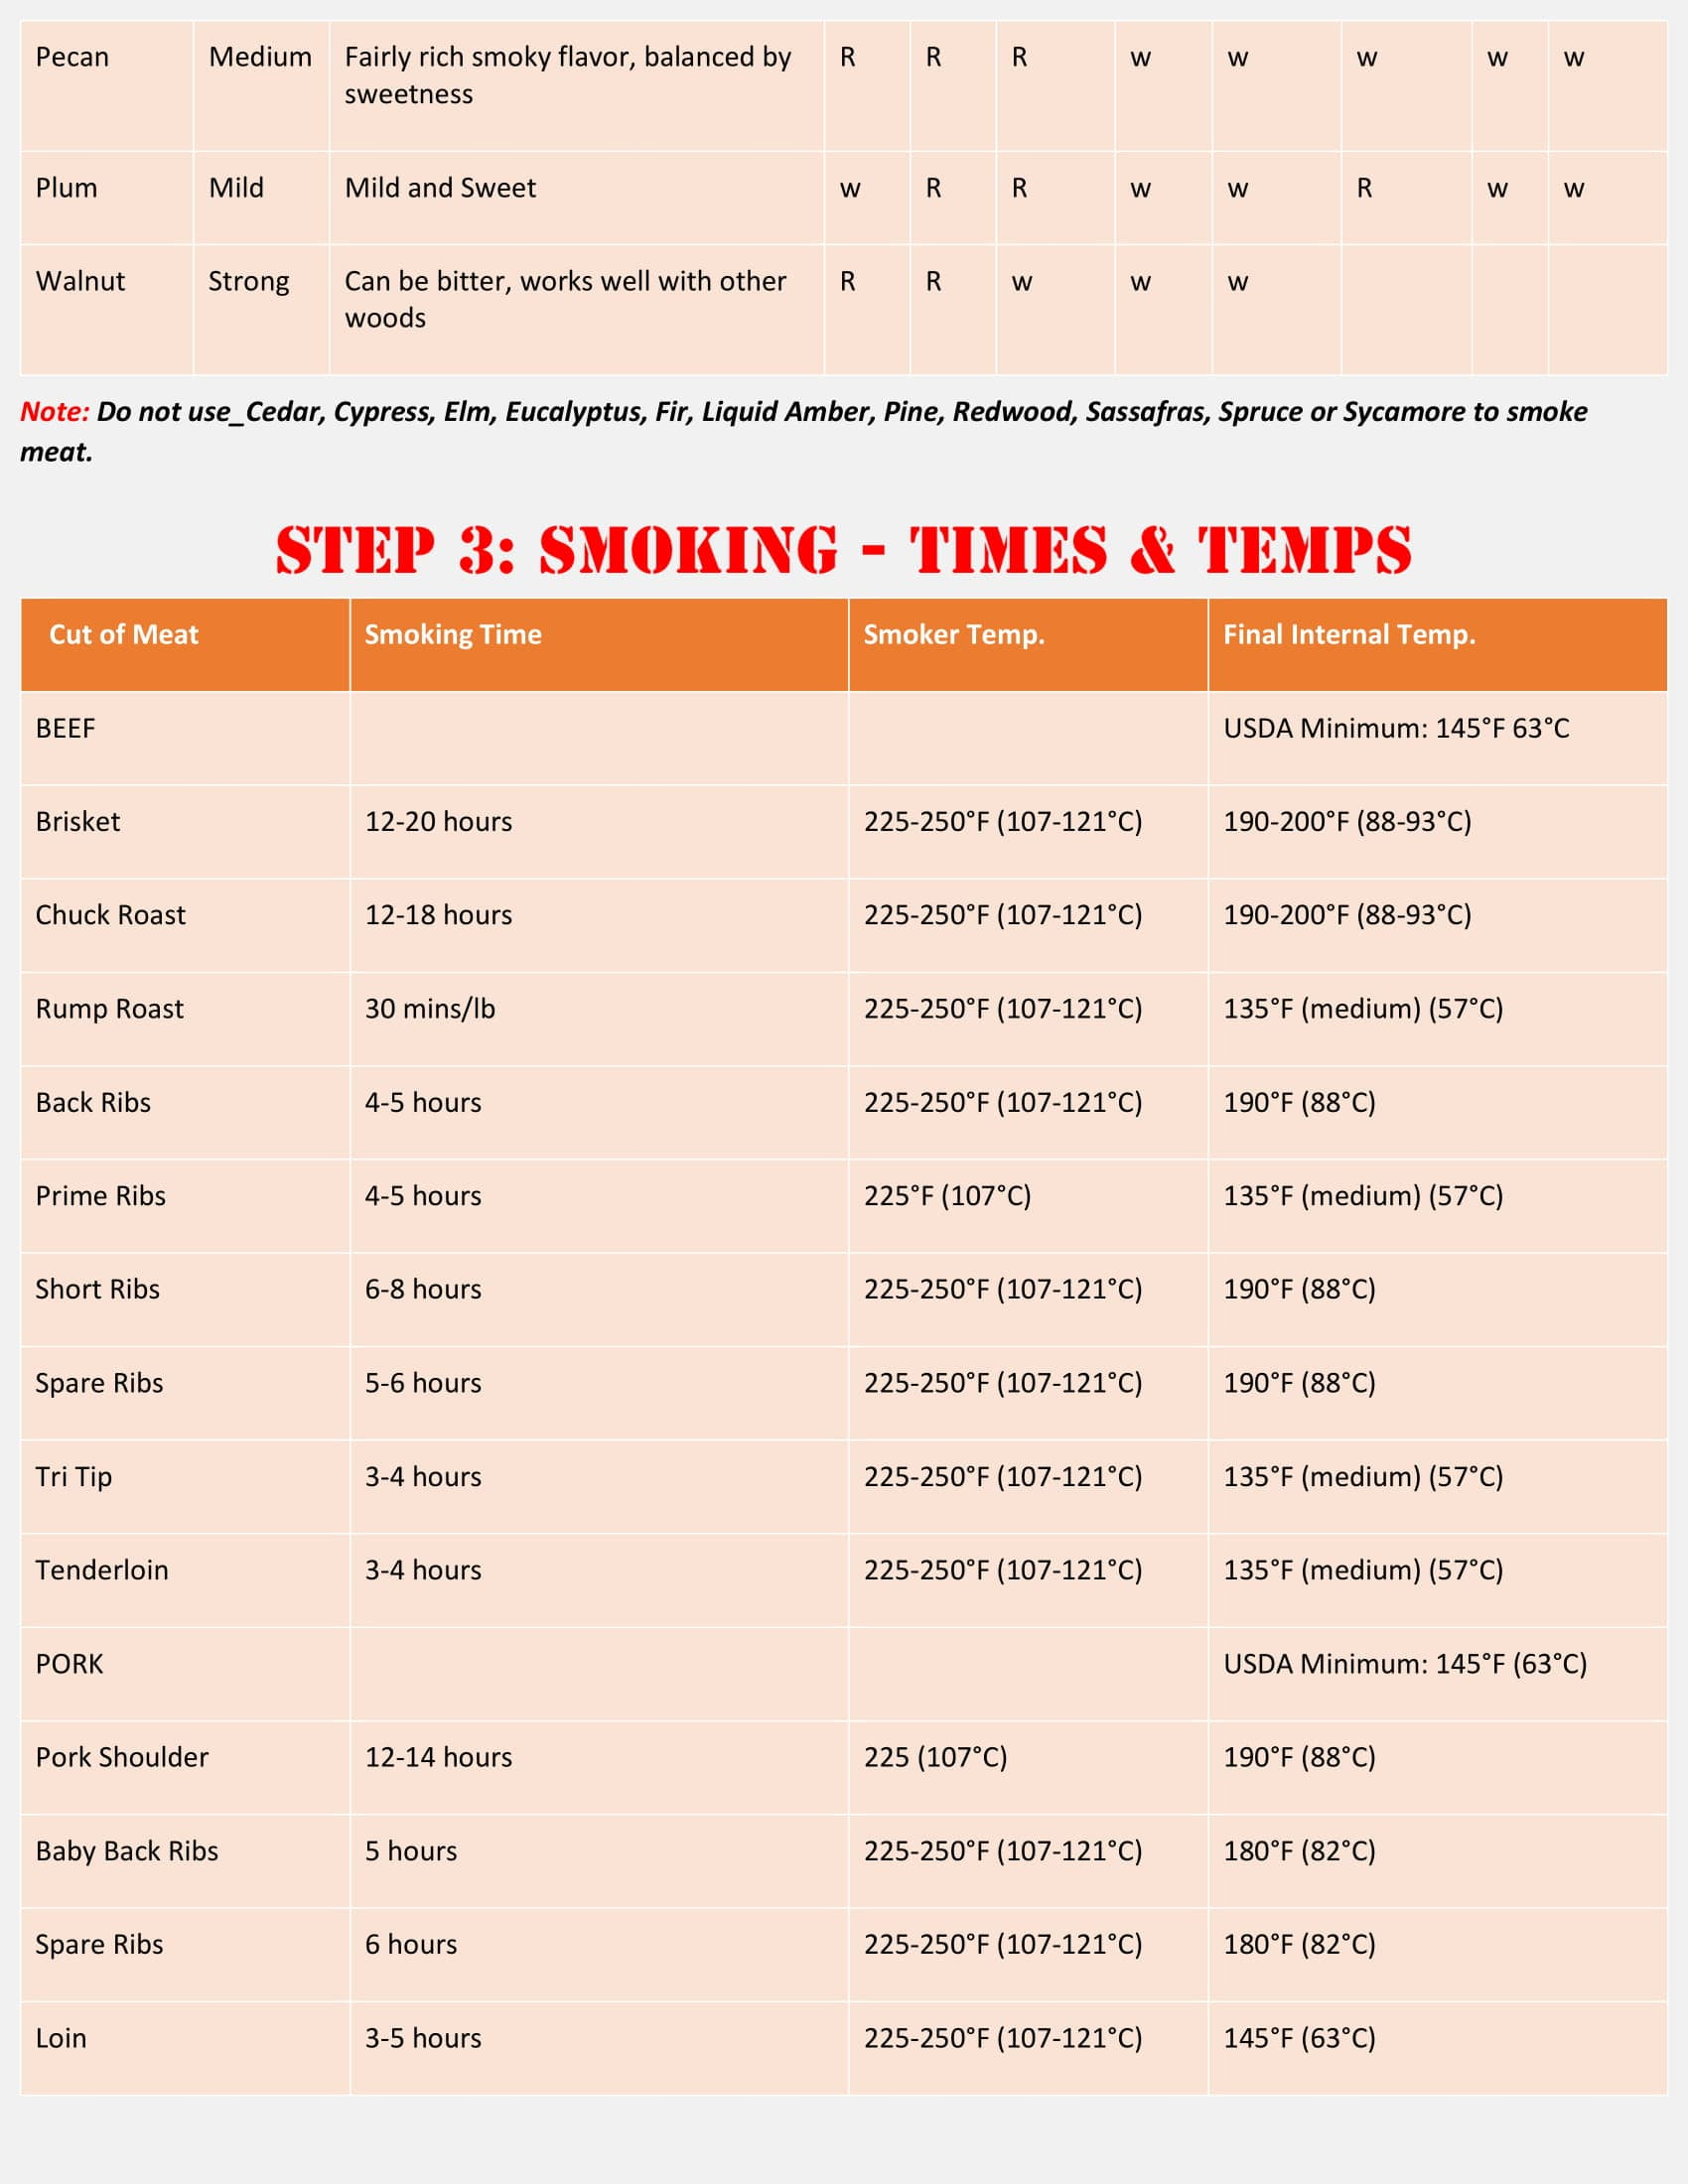 Meat Smoking Cheat Sheet - Bestsmokersinfo-3